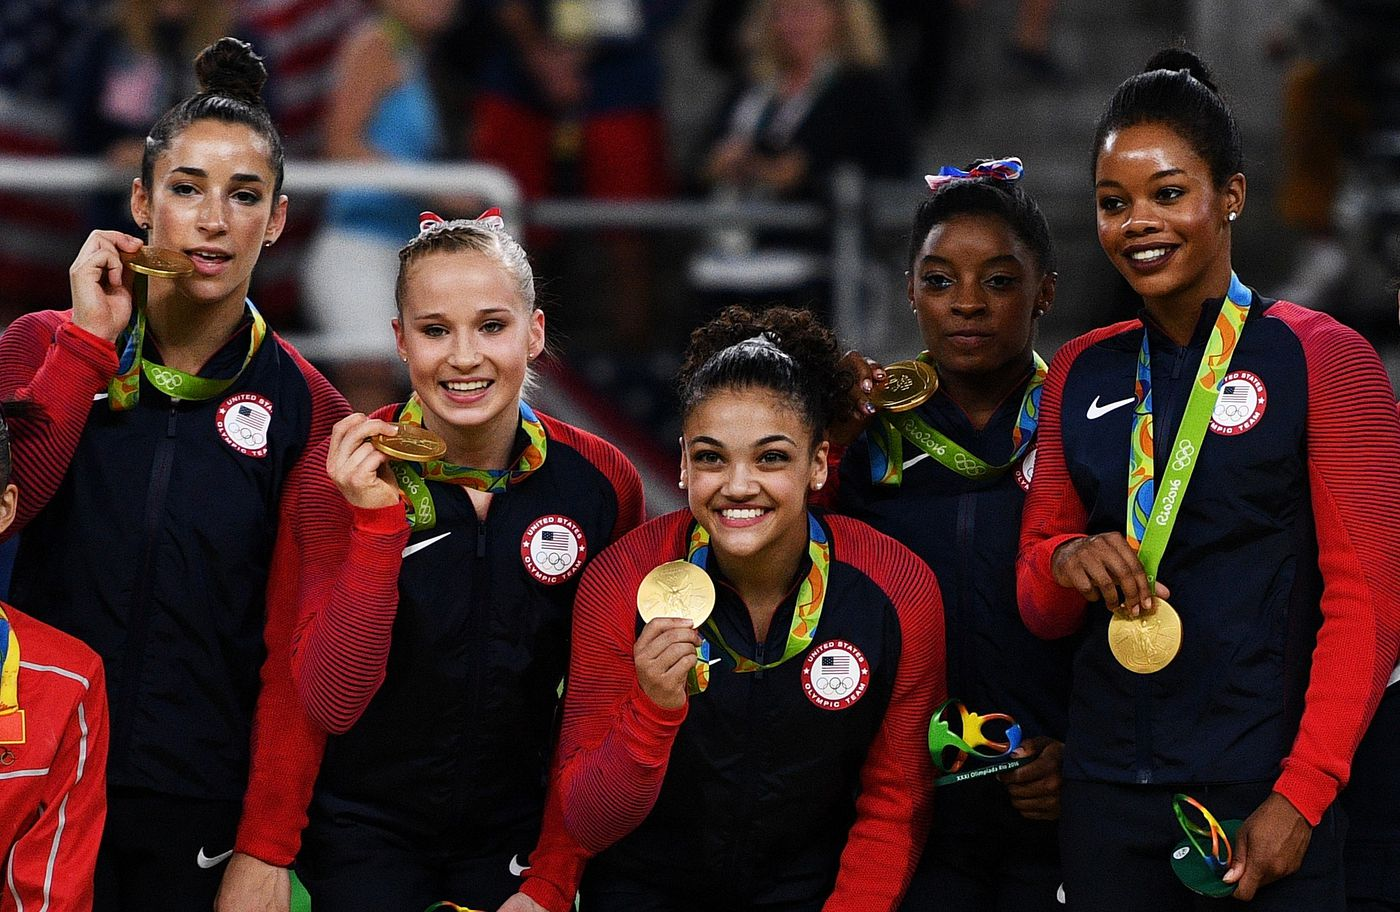 The sex abuse scandal surrounding USA Gymnastics team doctor Larry ...